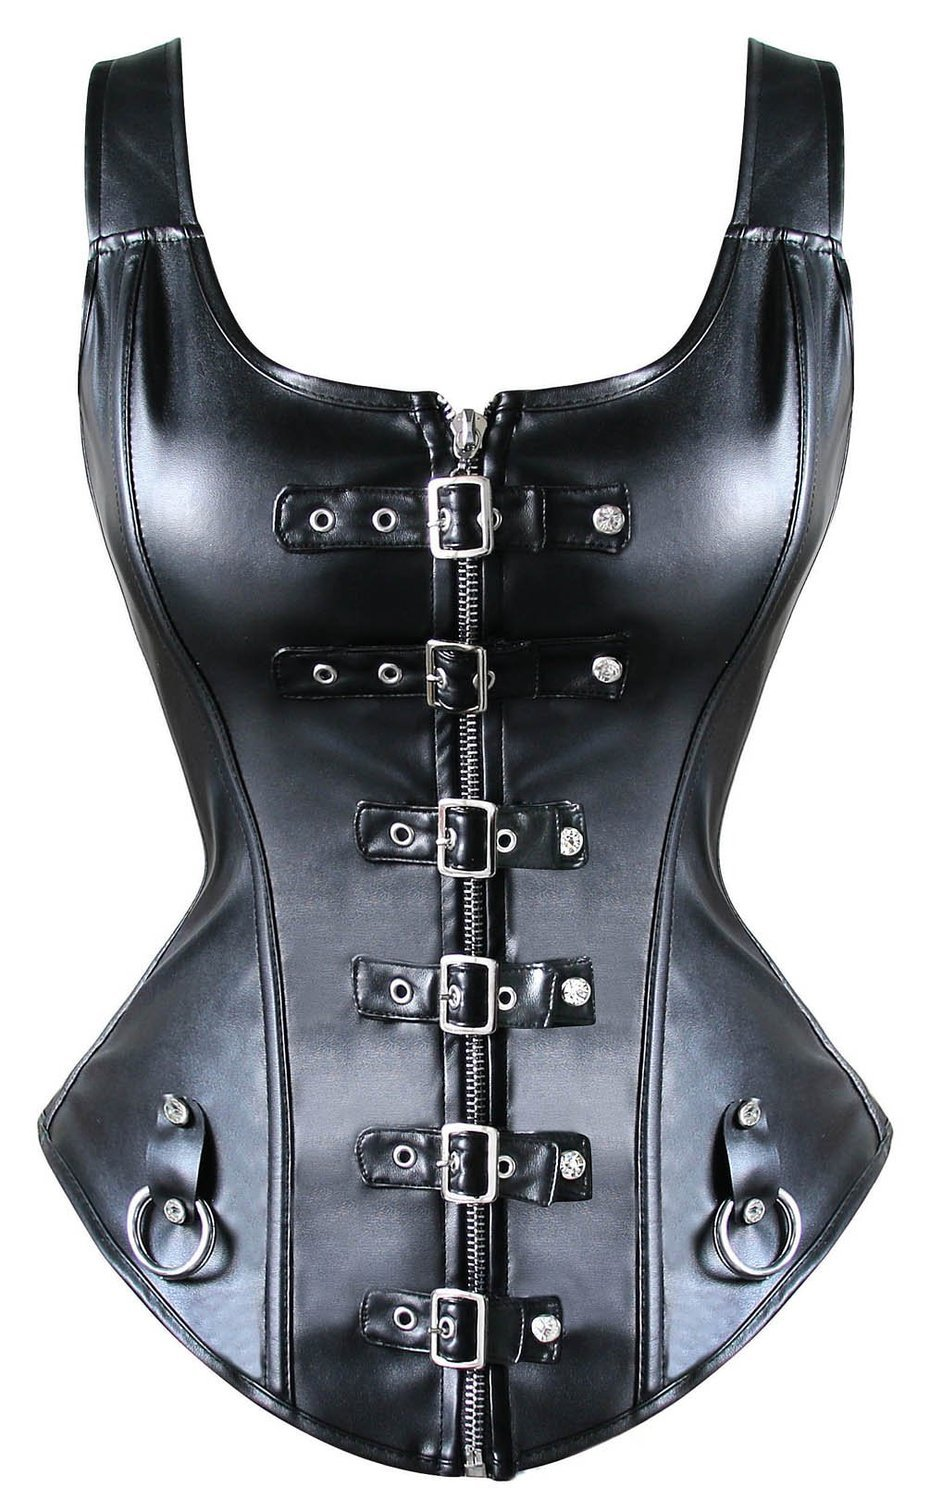 Womens Front Buckled Leather Bustier Corset With Bondage Rings Sexy Fetish Mistress Playsuit Black